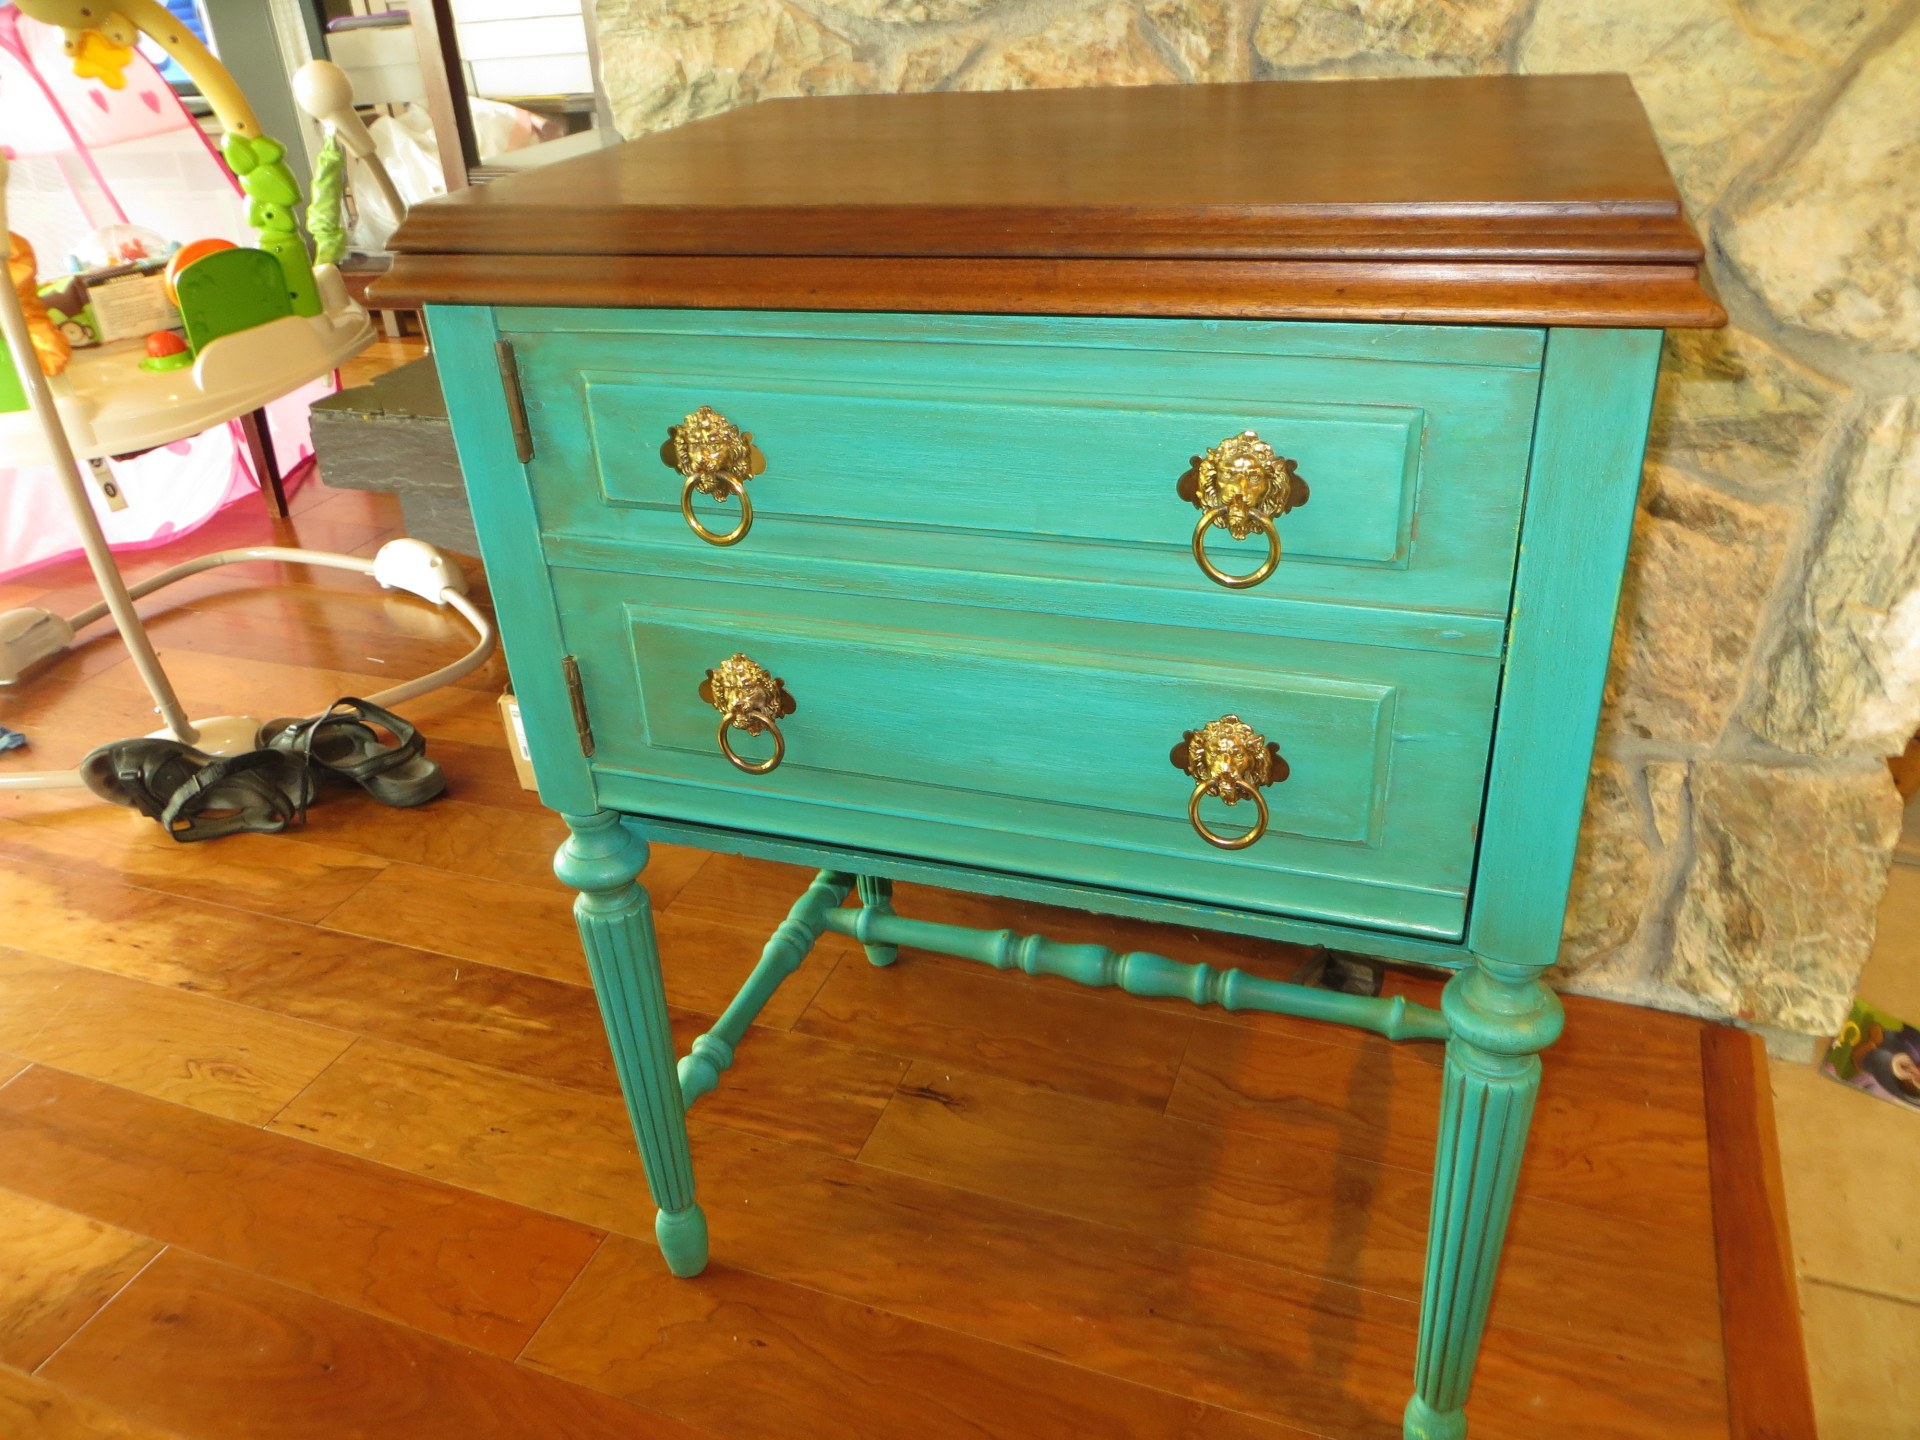 Upcycled Sewing Machine Table - SOLD